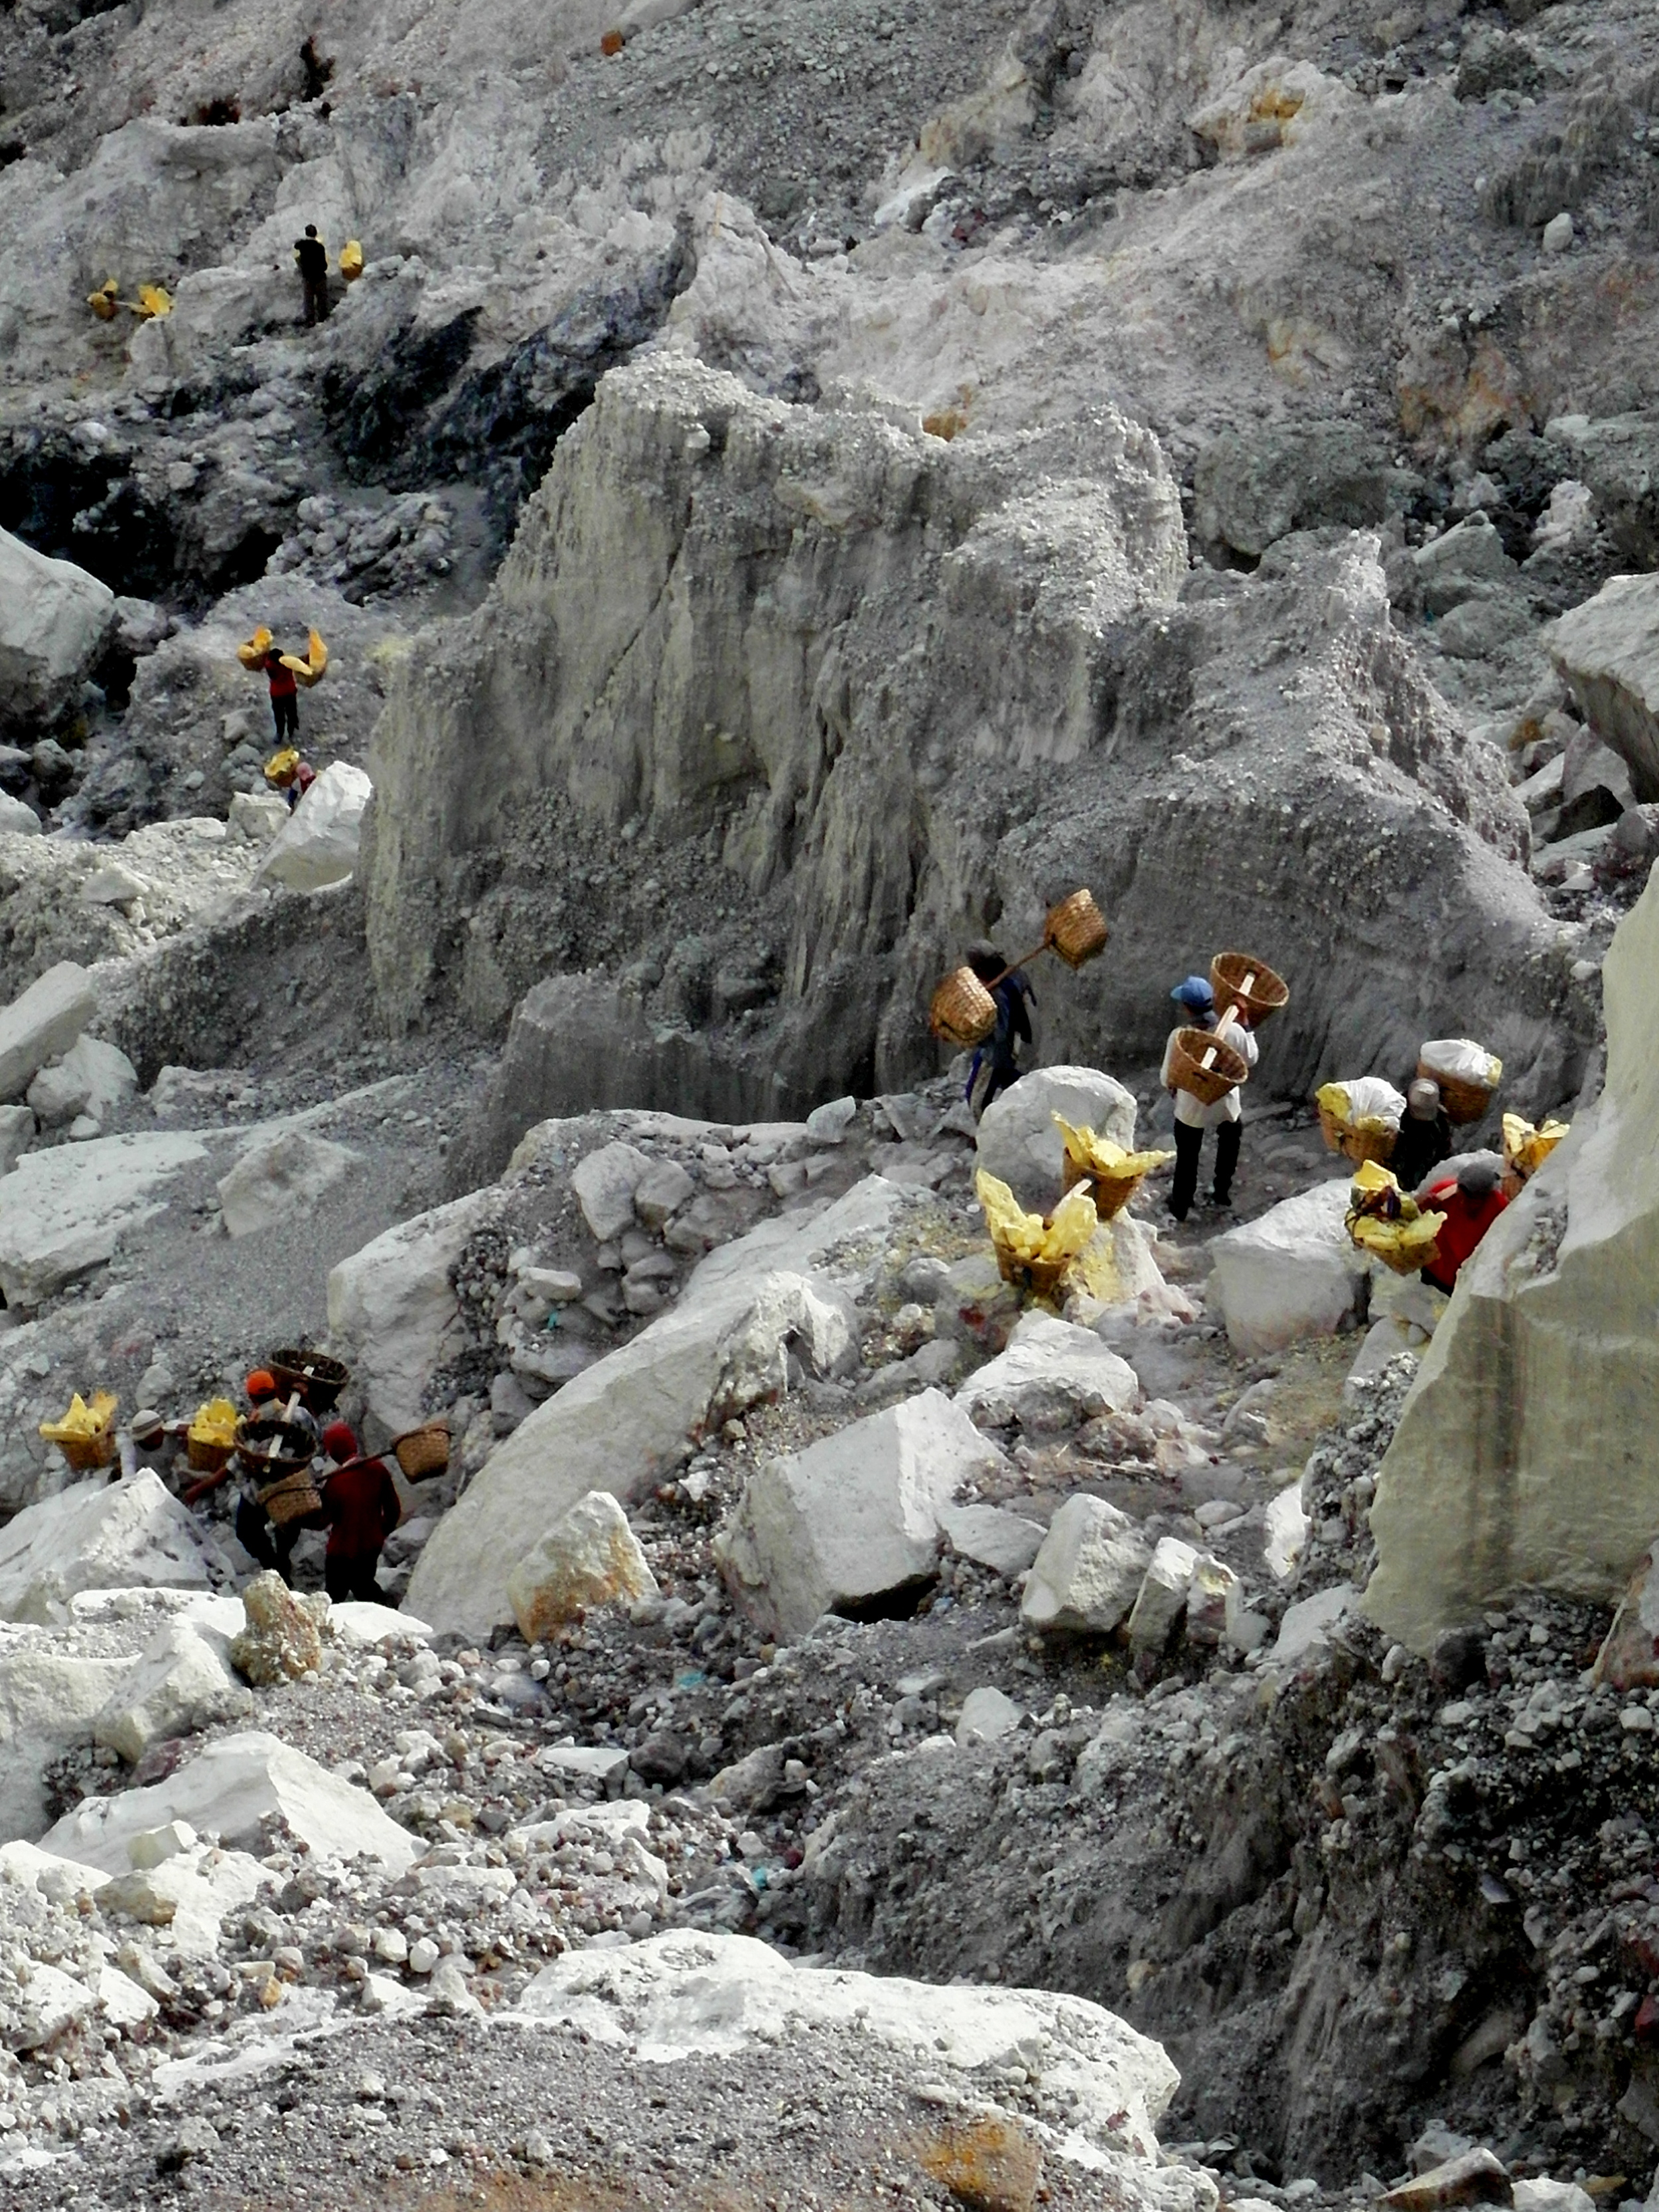 he miners of Kawah Ijen going about their daily routine.